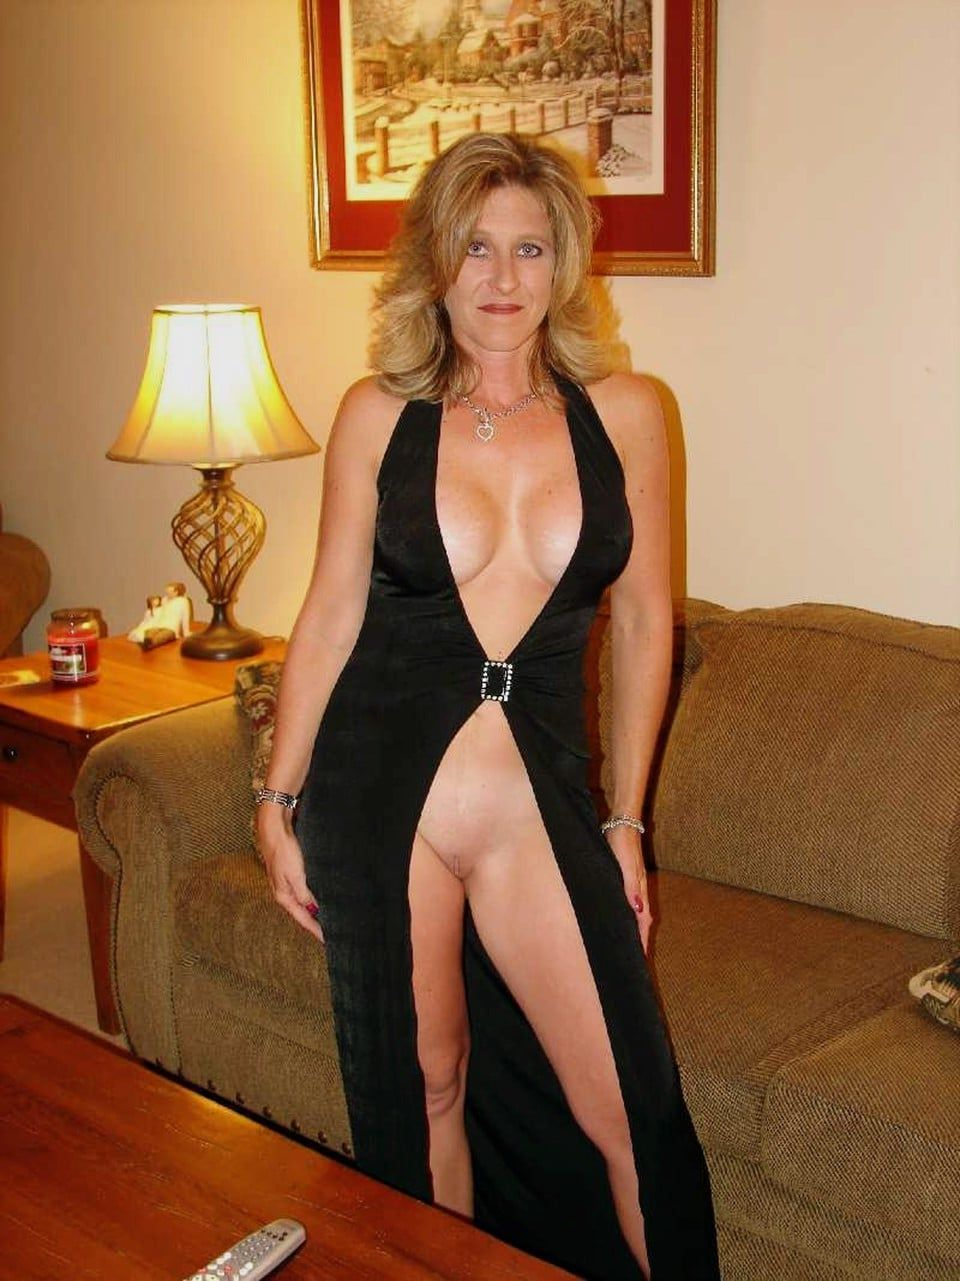 milf, mature, mom, cougar, wife, slut, whore, gif, dress, legs, side